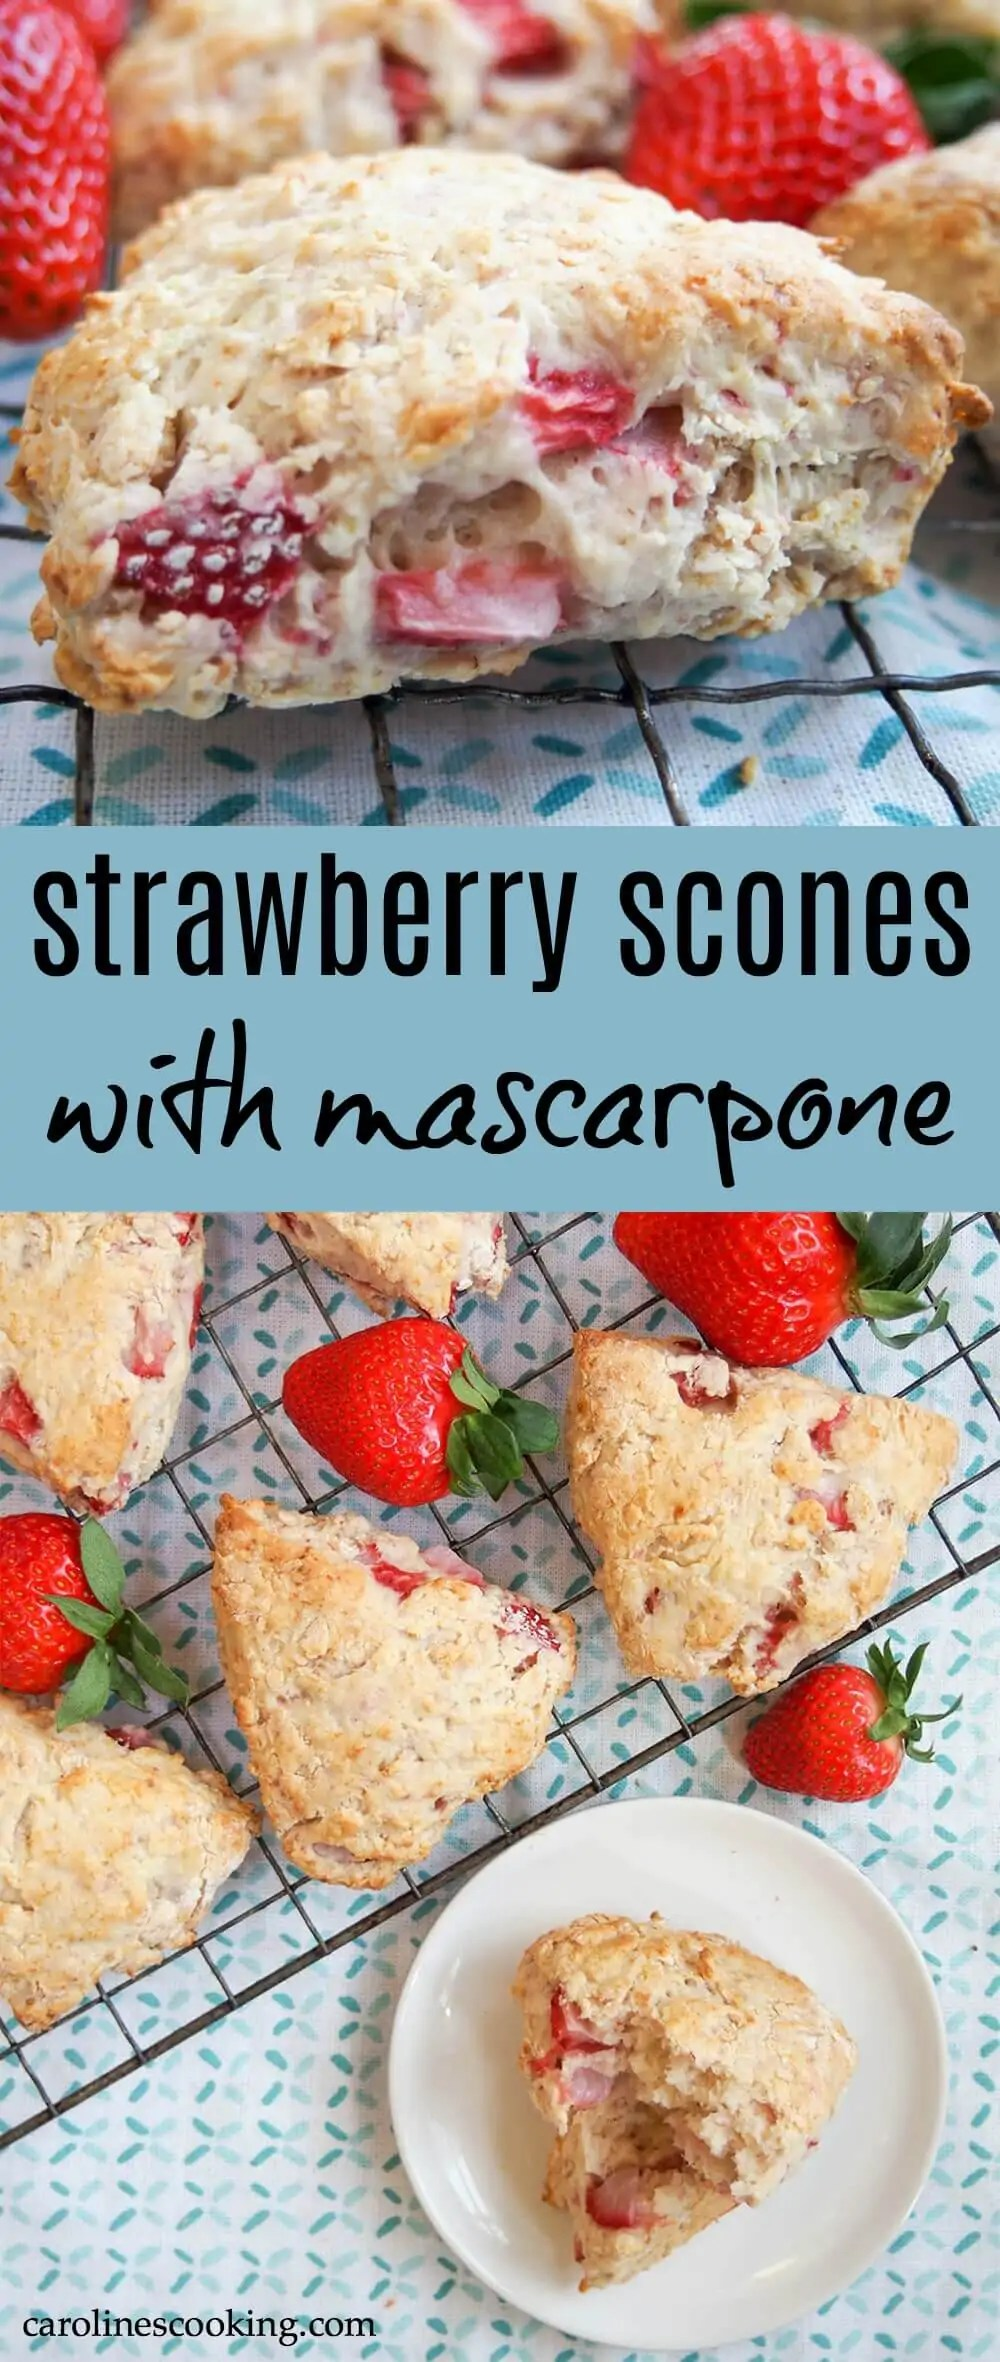 These strawberry scones are made with mascarpone and a double doze of strawberries for a wonderfully soft, fruity mouthful in every bite. Easy to make, they're a wonderful snack. #scone #strawberry #baking